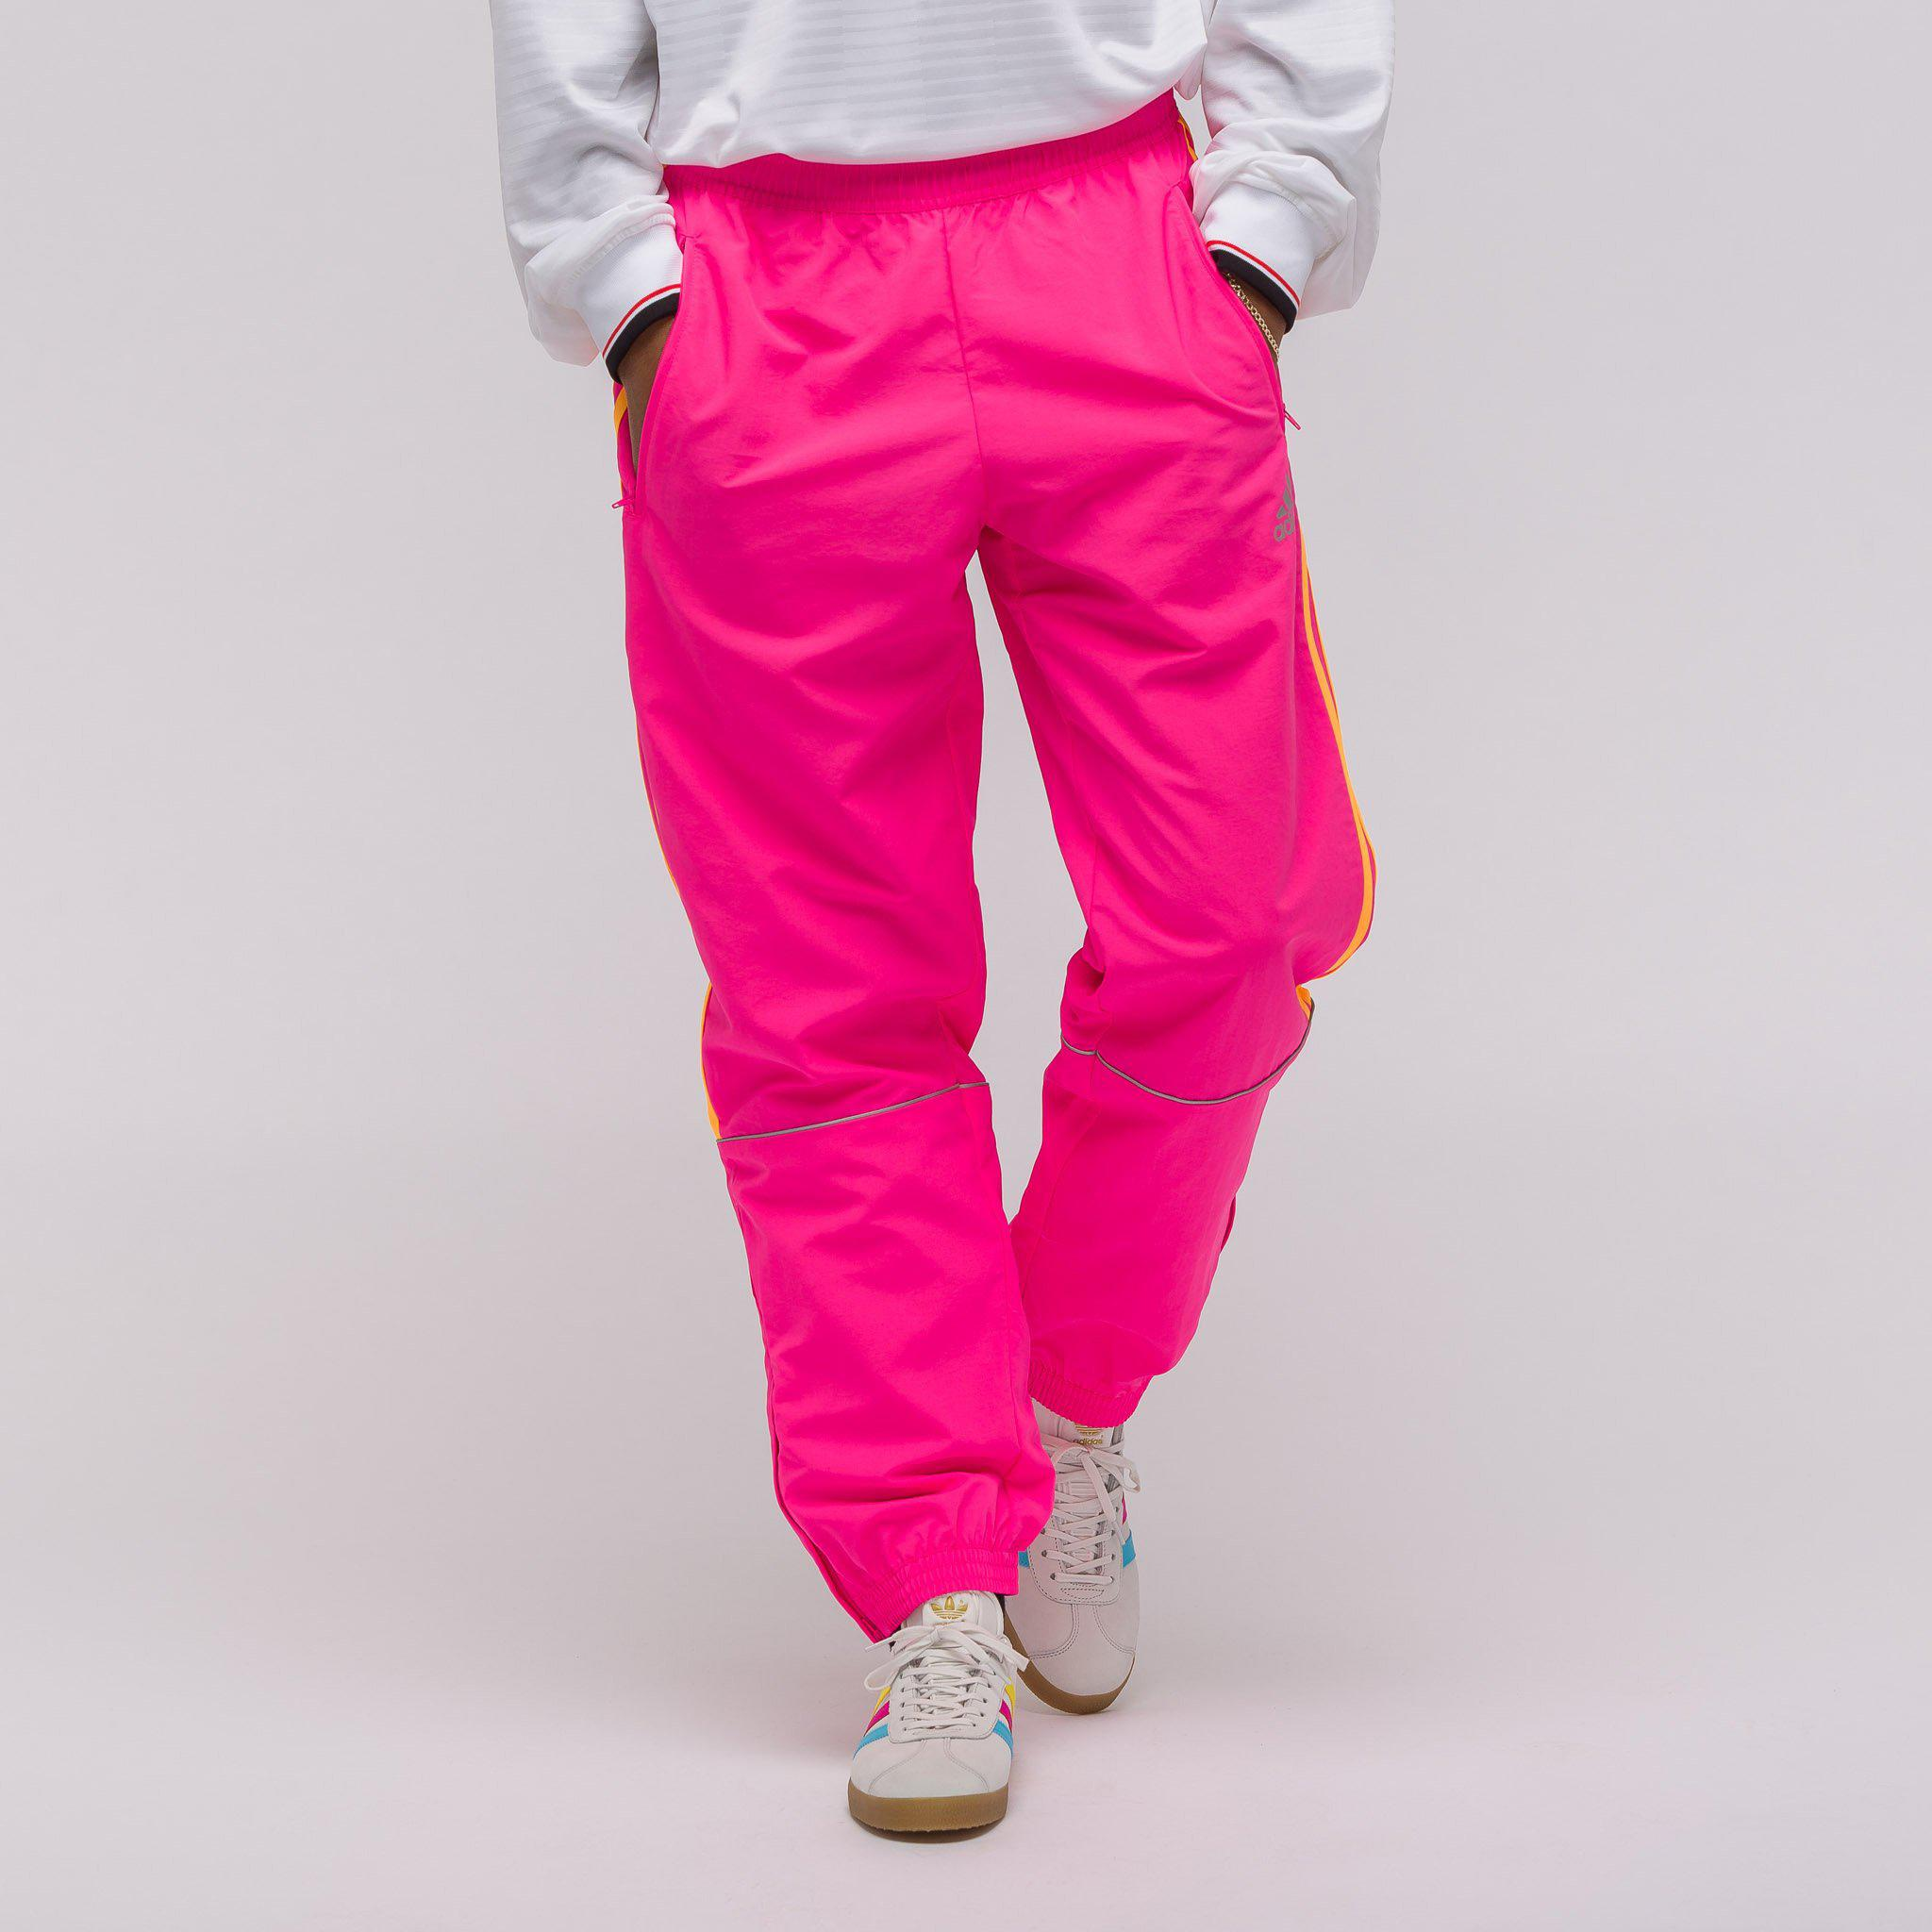 aab00e52c2ae Lyst - Gosha Rubchinskiy X Adidas Track Pants In Pink in Pink for Men